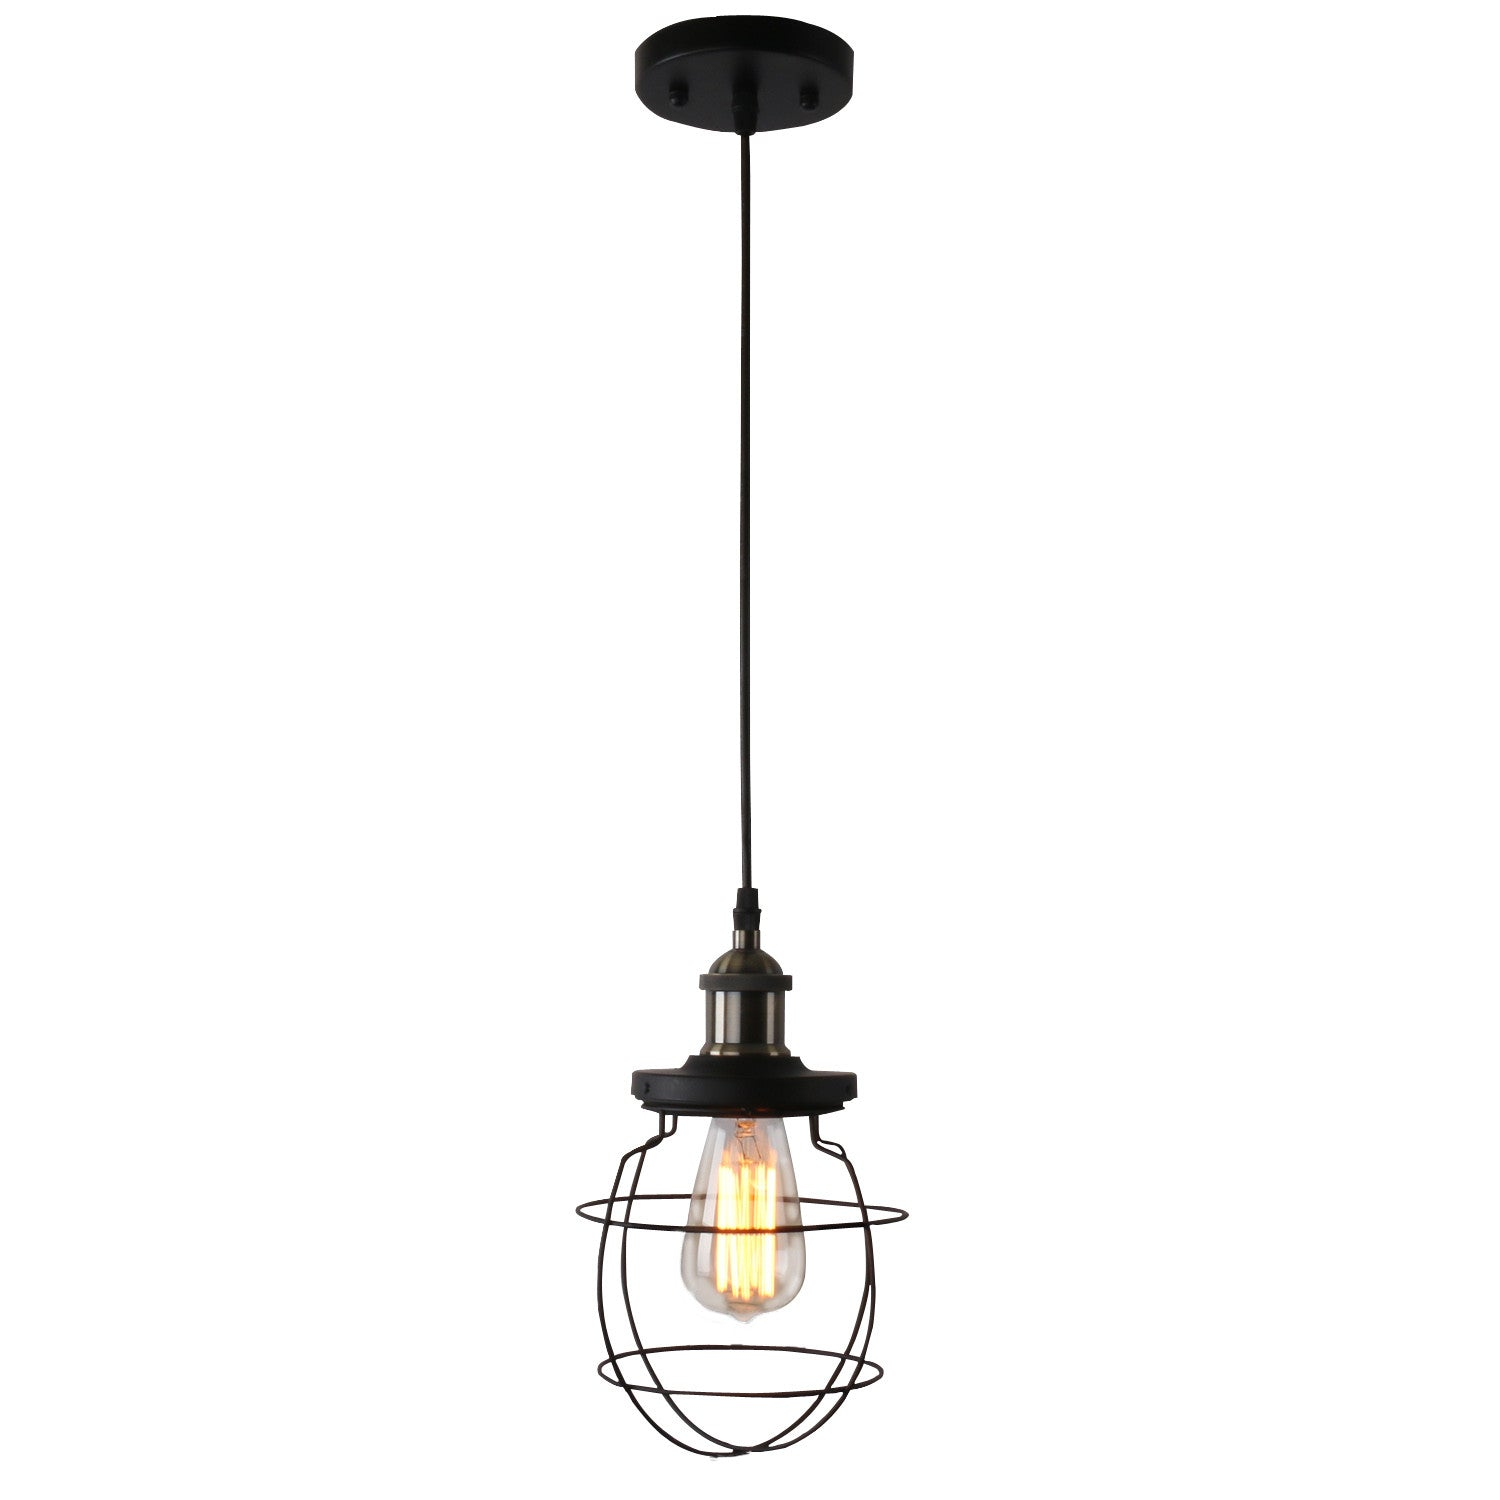 pendant uk black preeminent drop for contemporary chrome lighting quoizel kitchen textured table quotes flat great general bronze glass ceiling mini lights fixtures hanging tiffany xbox light